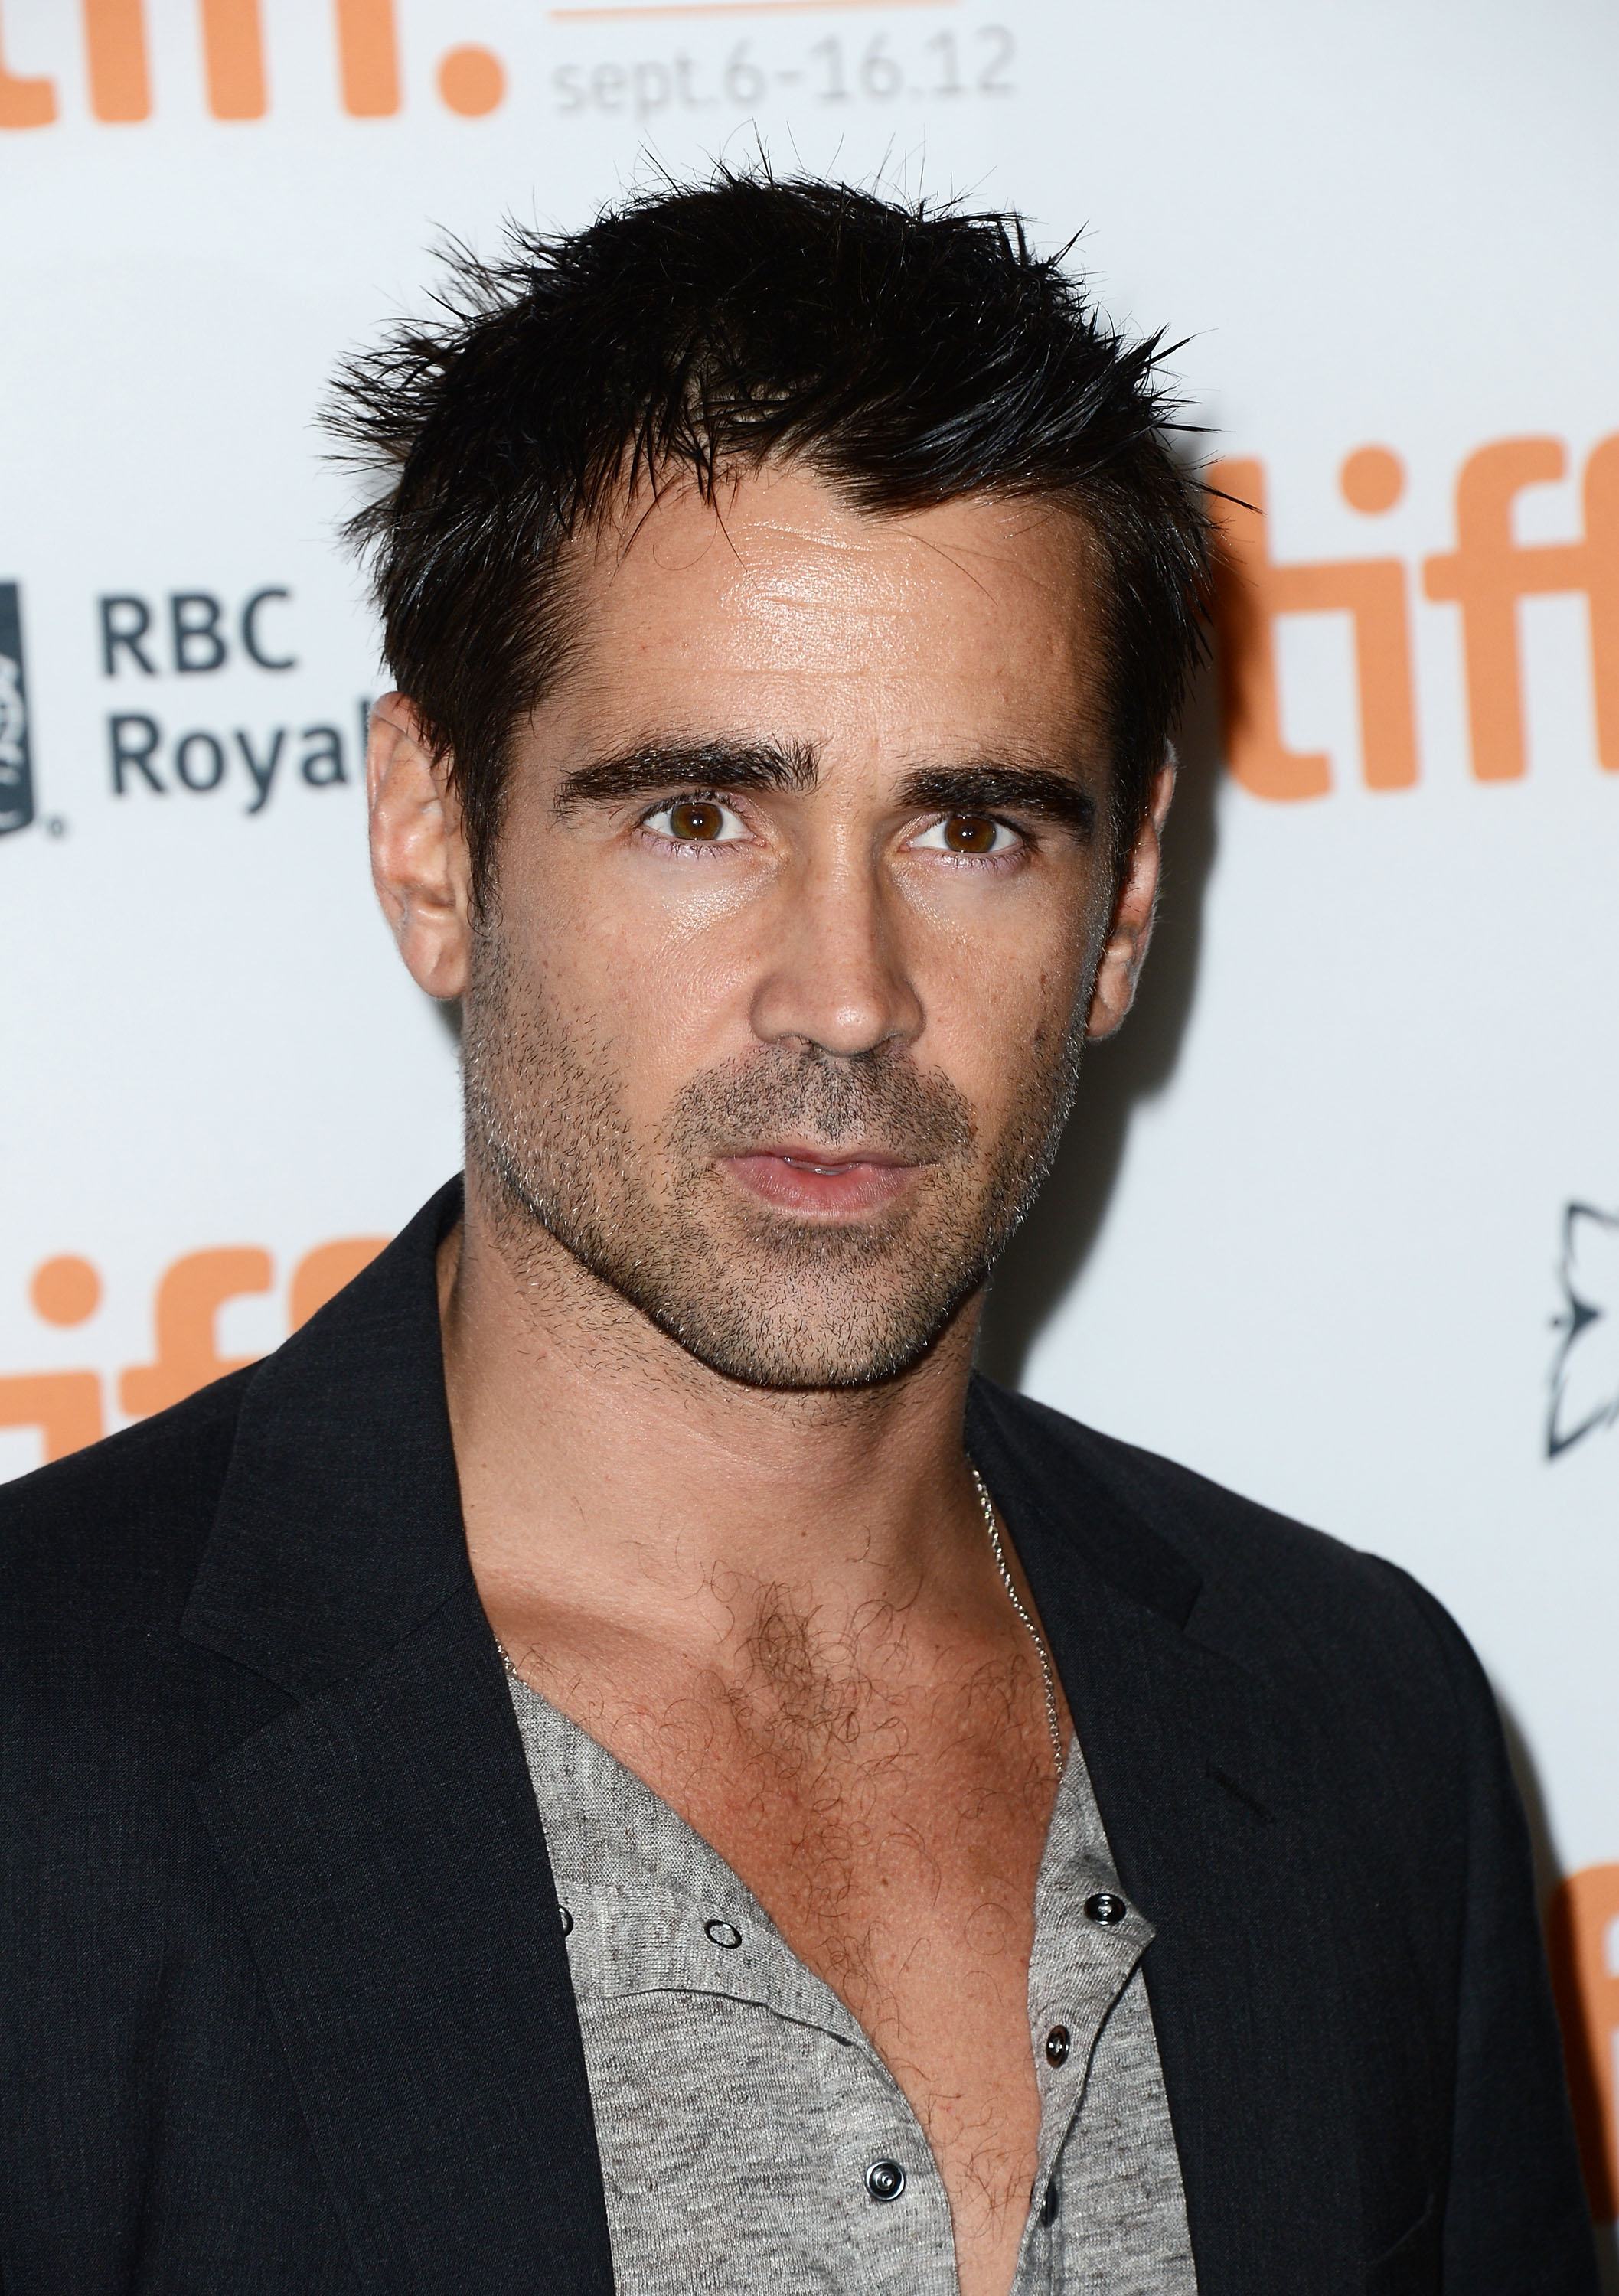 Actor Colin Ferrell attends  Seven Psychopaths  premiere during the 2012 Toronto International Film Festival at Ryerson Theatre on Sept. 7, 2012 in Toronto.